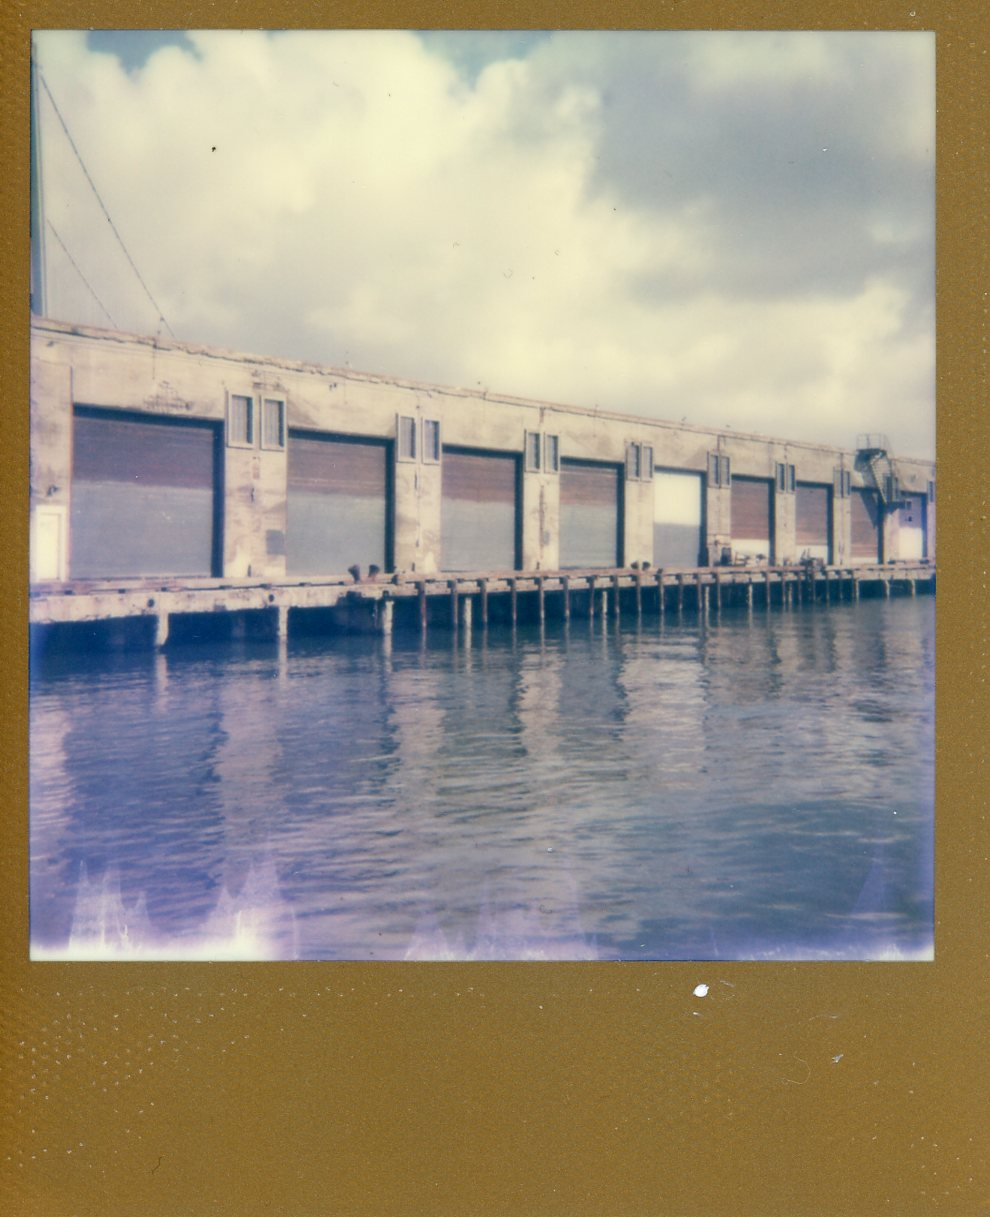 SF_Polaroid002.jpg